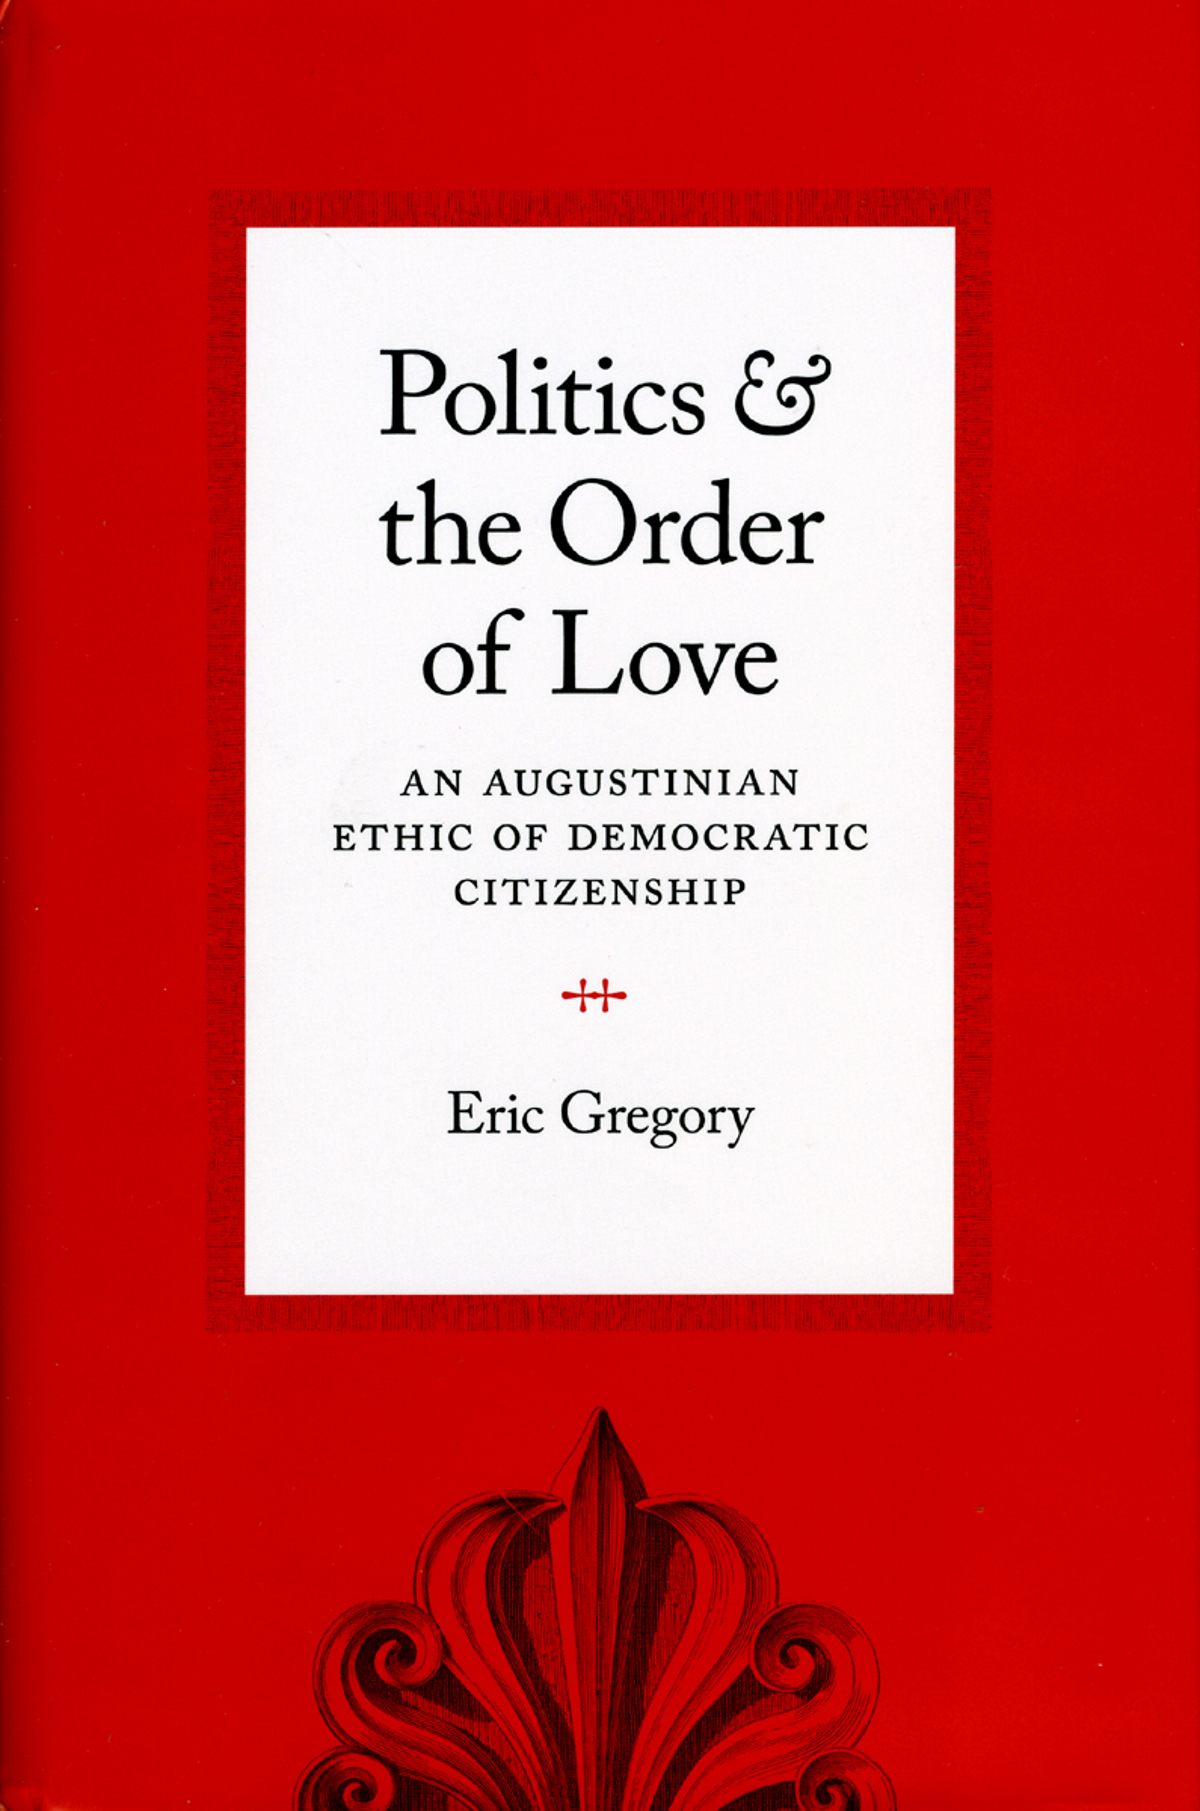 cover for Politics & The Order of Love: An Augustinian Ethic of Democratic Citizenship